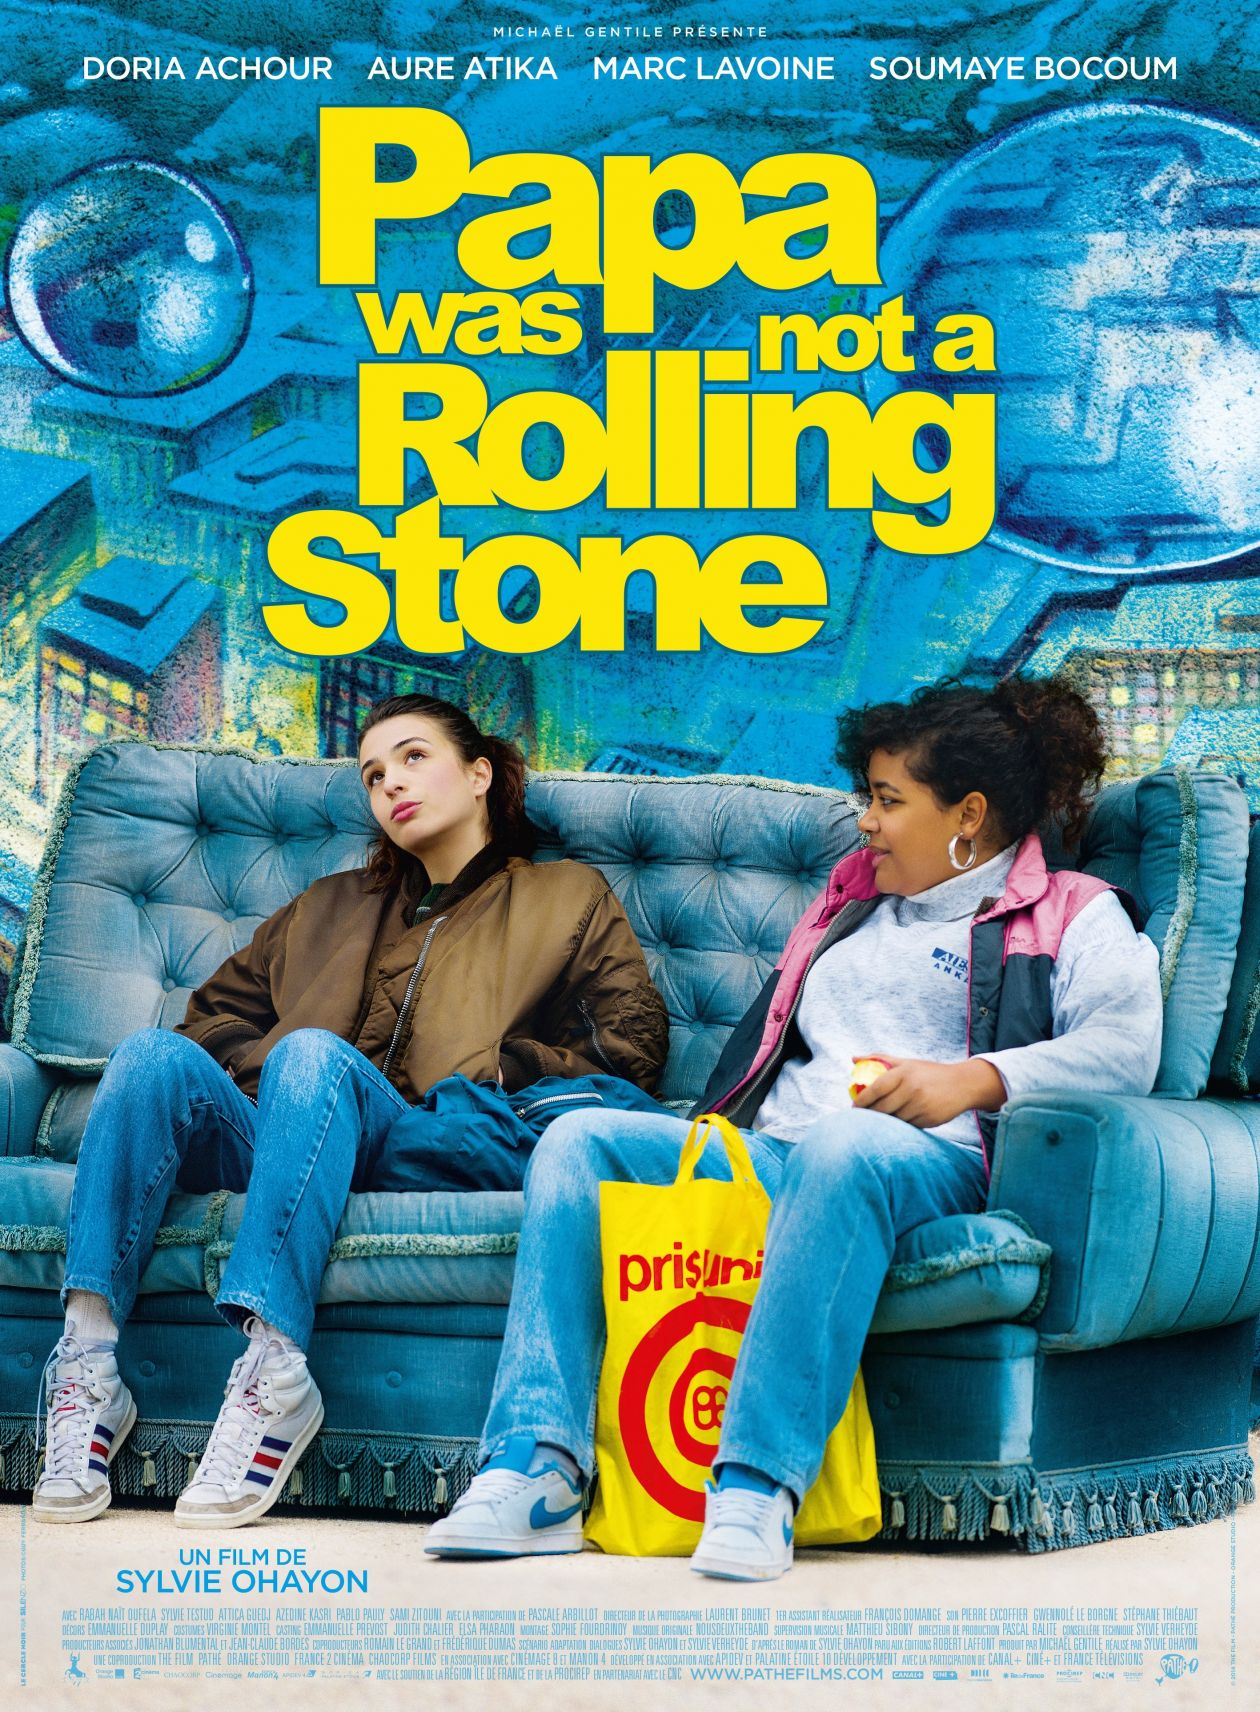 Doria Achour actress actrice comédienne | Papa Was Not a Rolling Stone / Sylvie Ohayon 2014 Movie Poster Affiche film